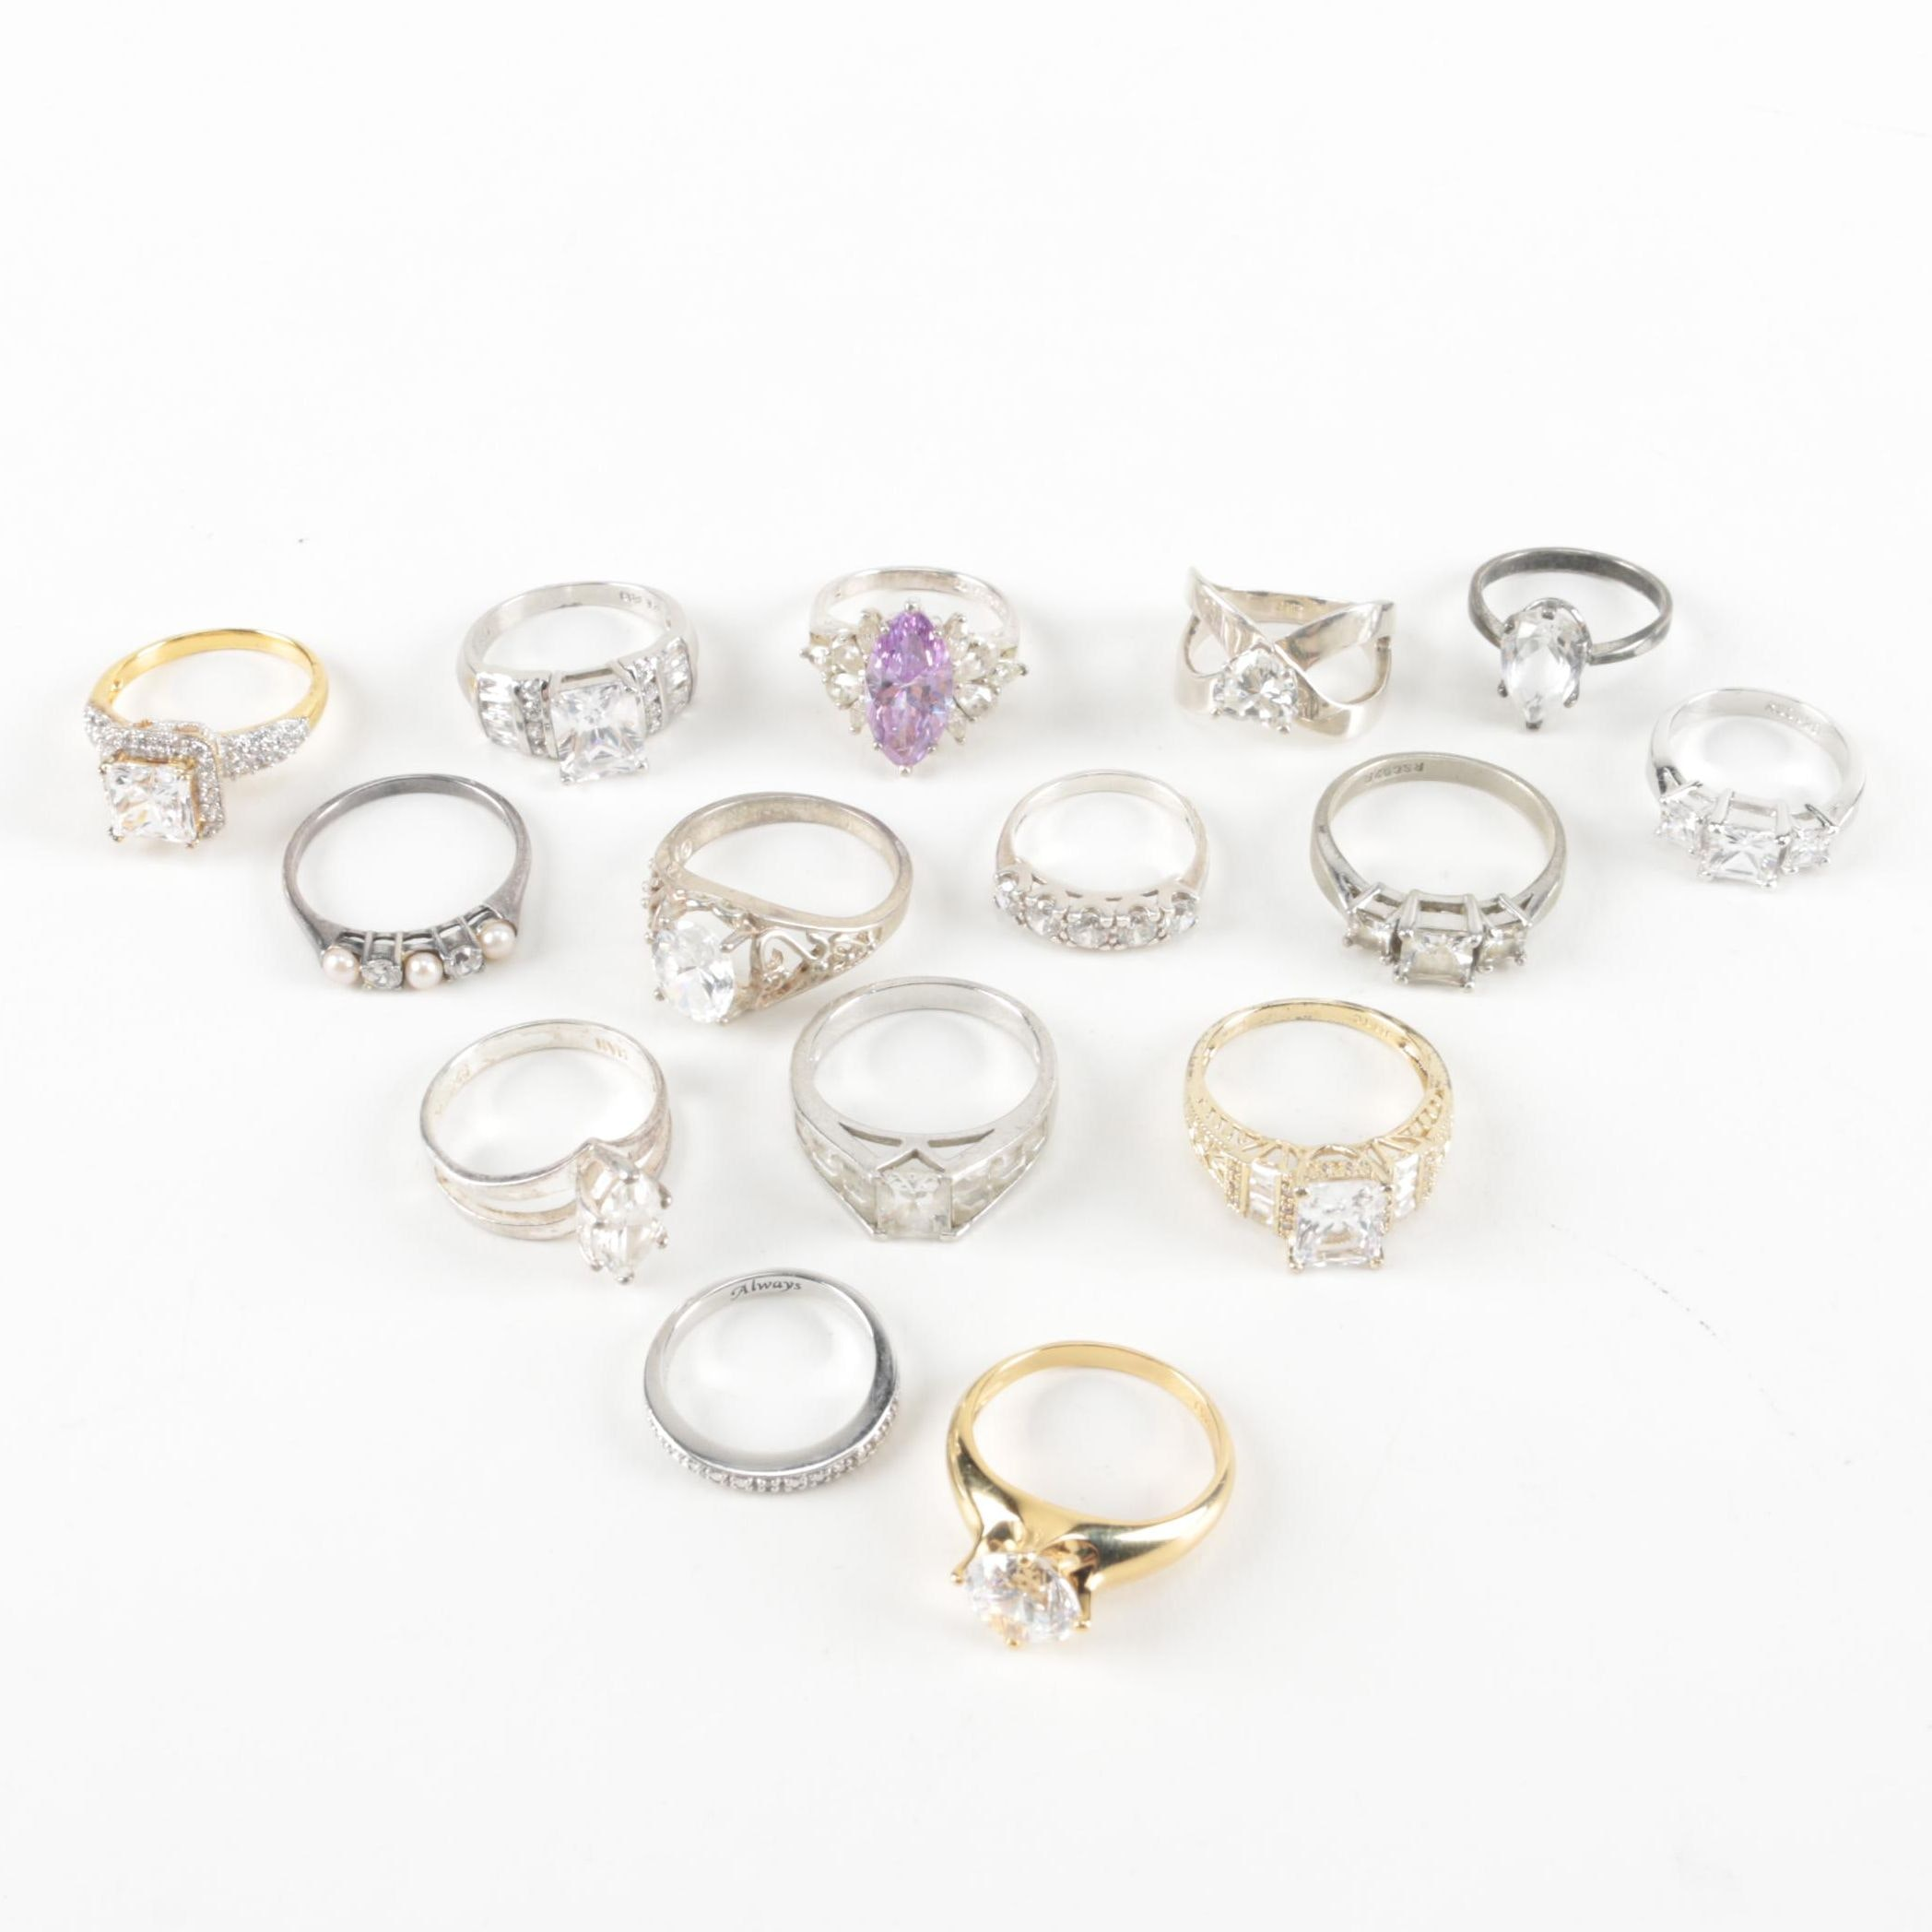 Sterling Rings Including Cubic Zirconia